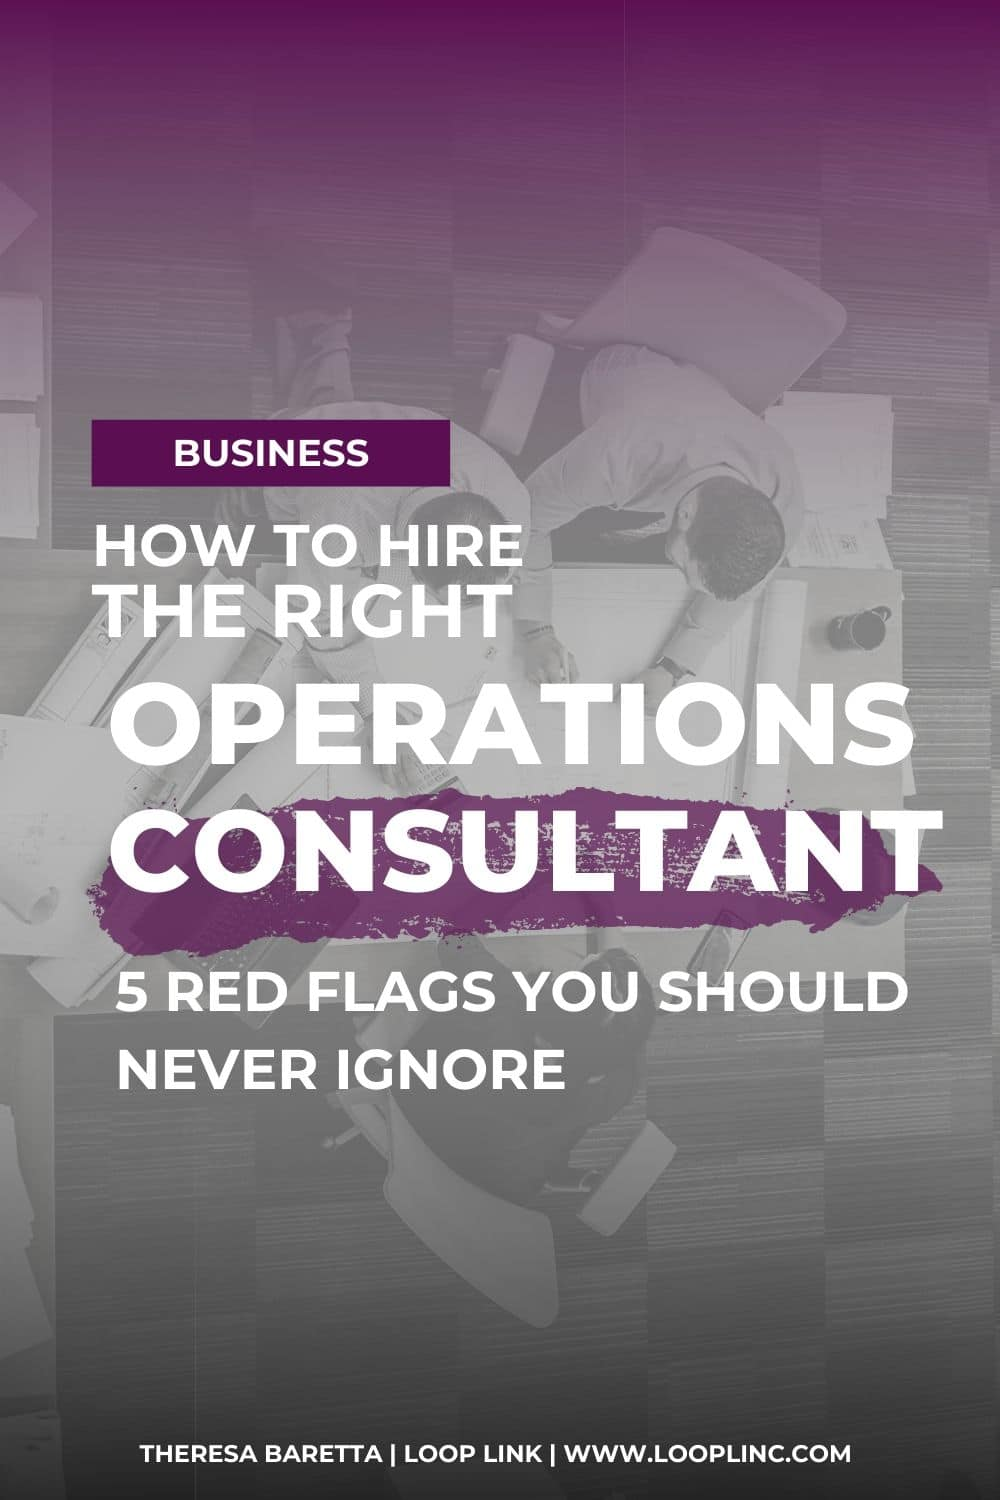 How to hire the right operations consultant